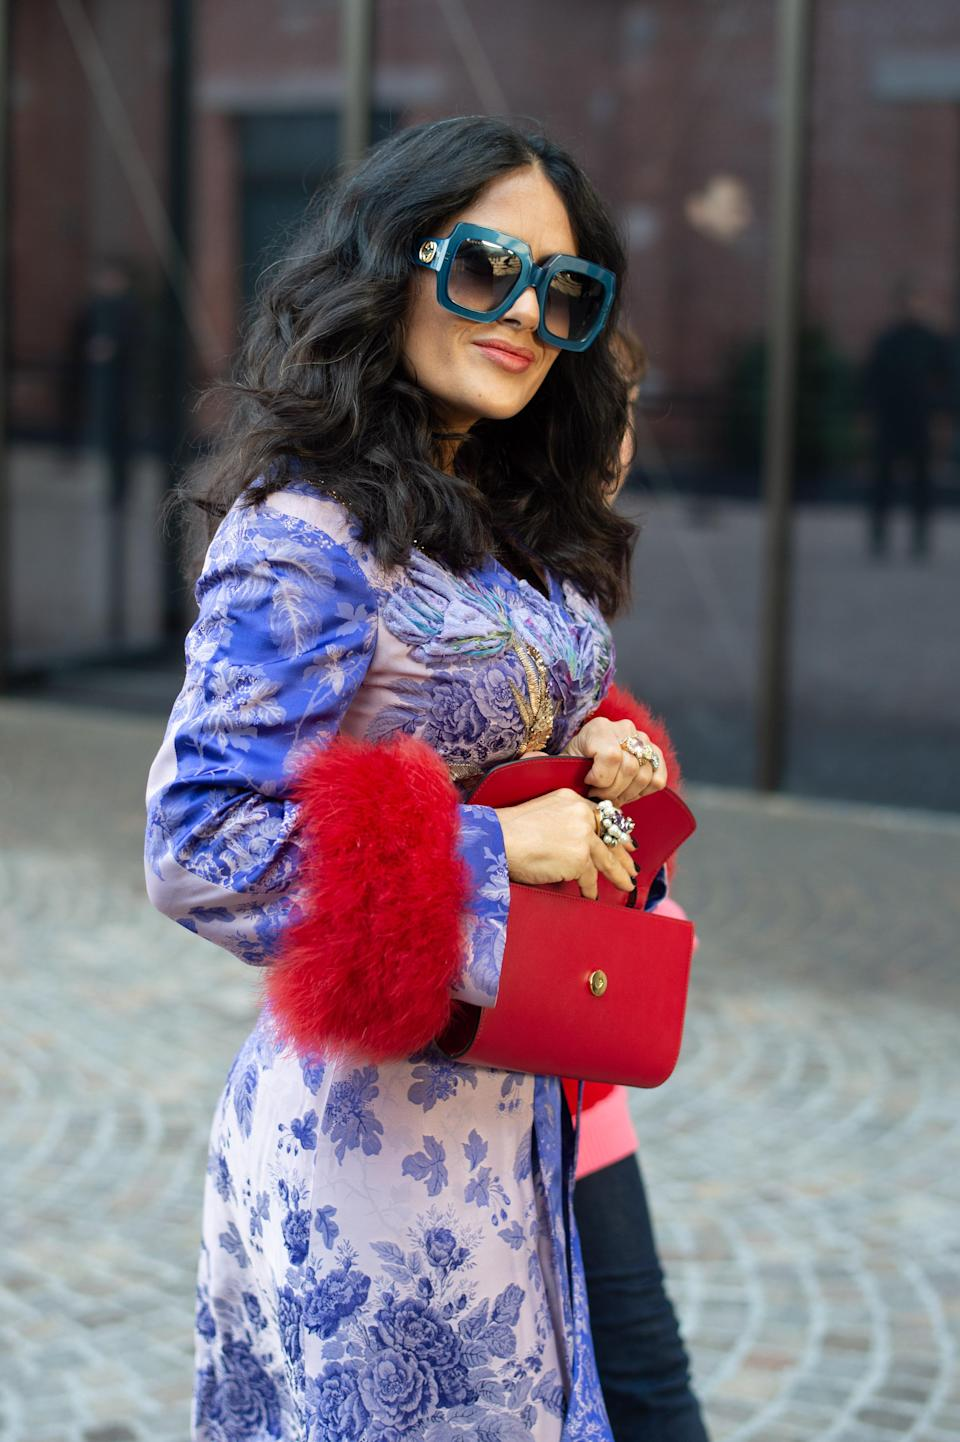 Salma Hayek Pinault attends the Gucci show at Milan Fashion Week Autumn/Winter 2019/20 on February 20, 2019 in Milan, Italy. (Credit: Jacopo Raule/Getty Images)